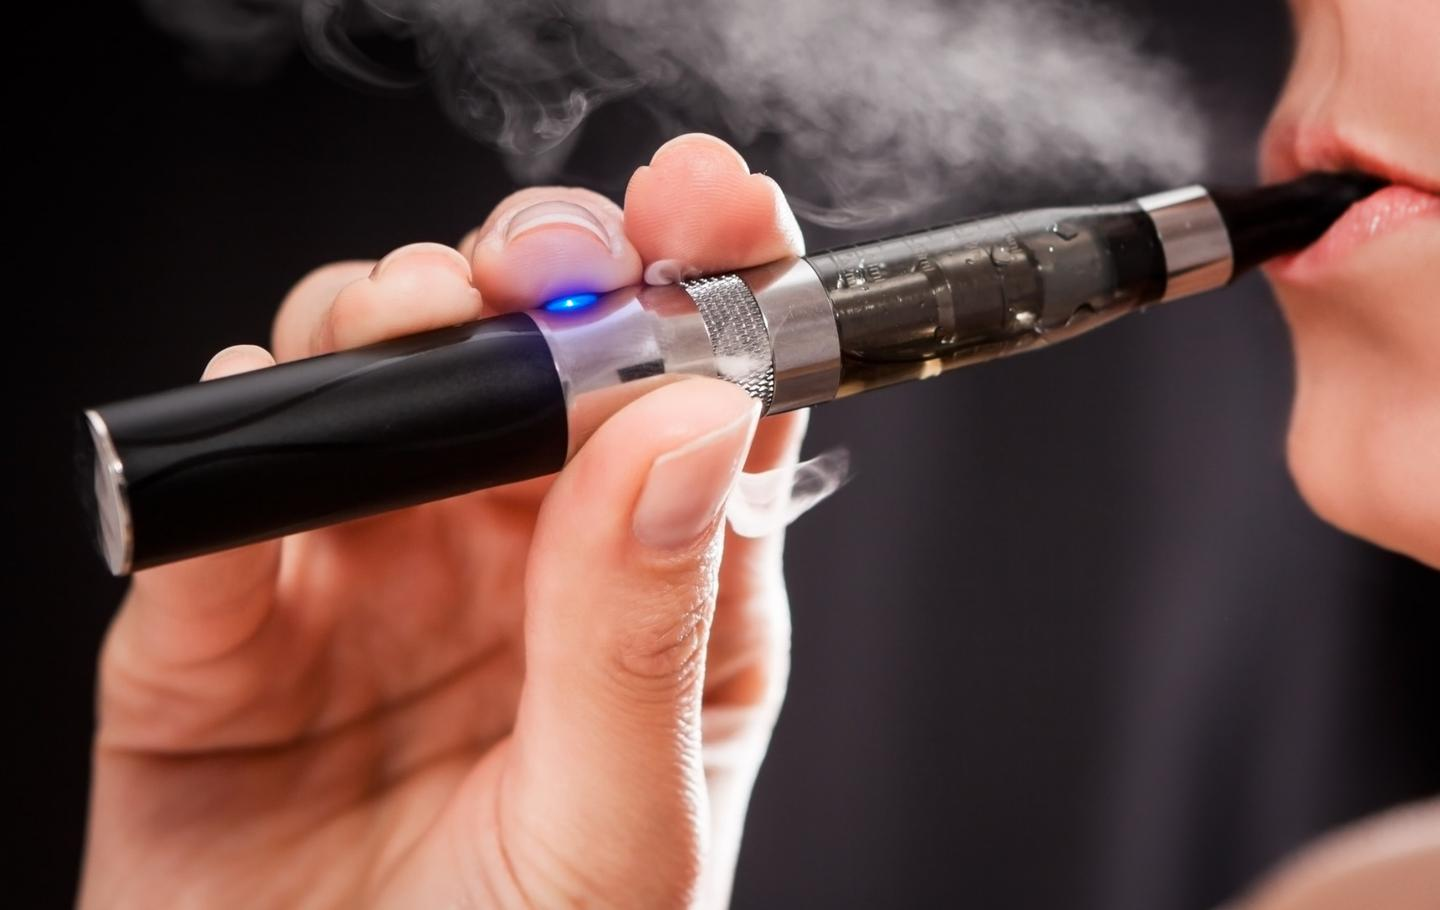 A new study suggests that e-cigarette heating coils could be leeching toxic metals into the vapor they produce